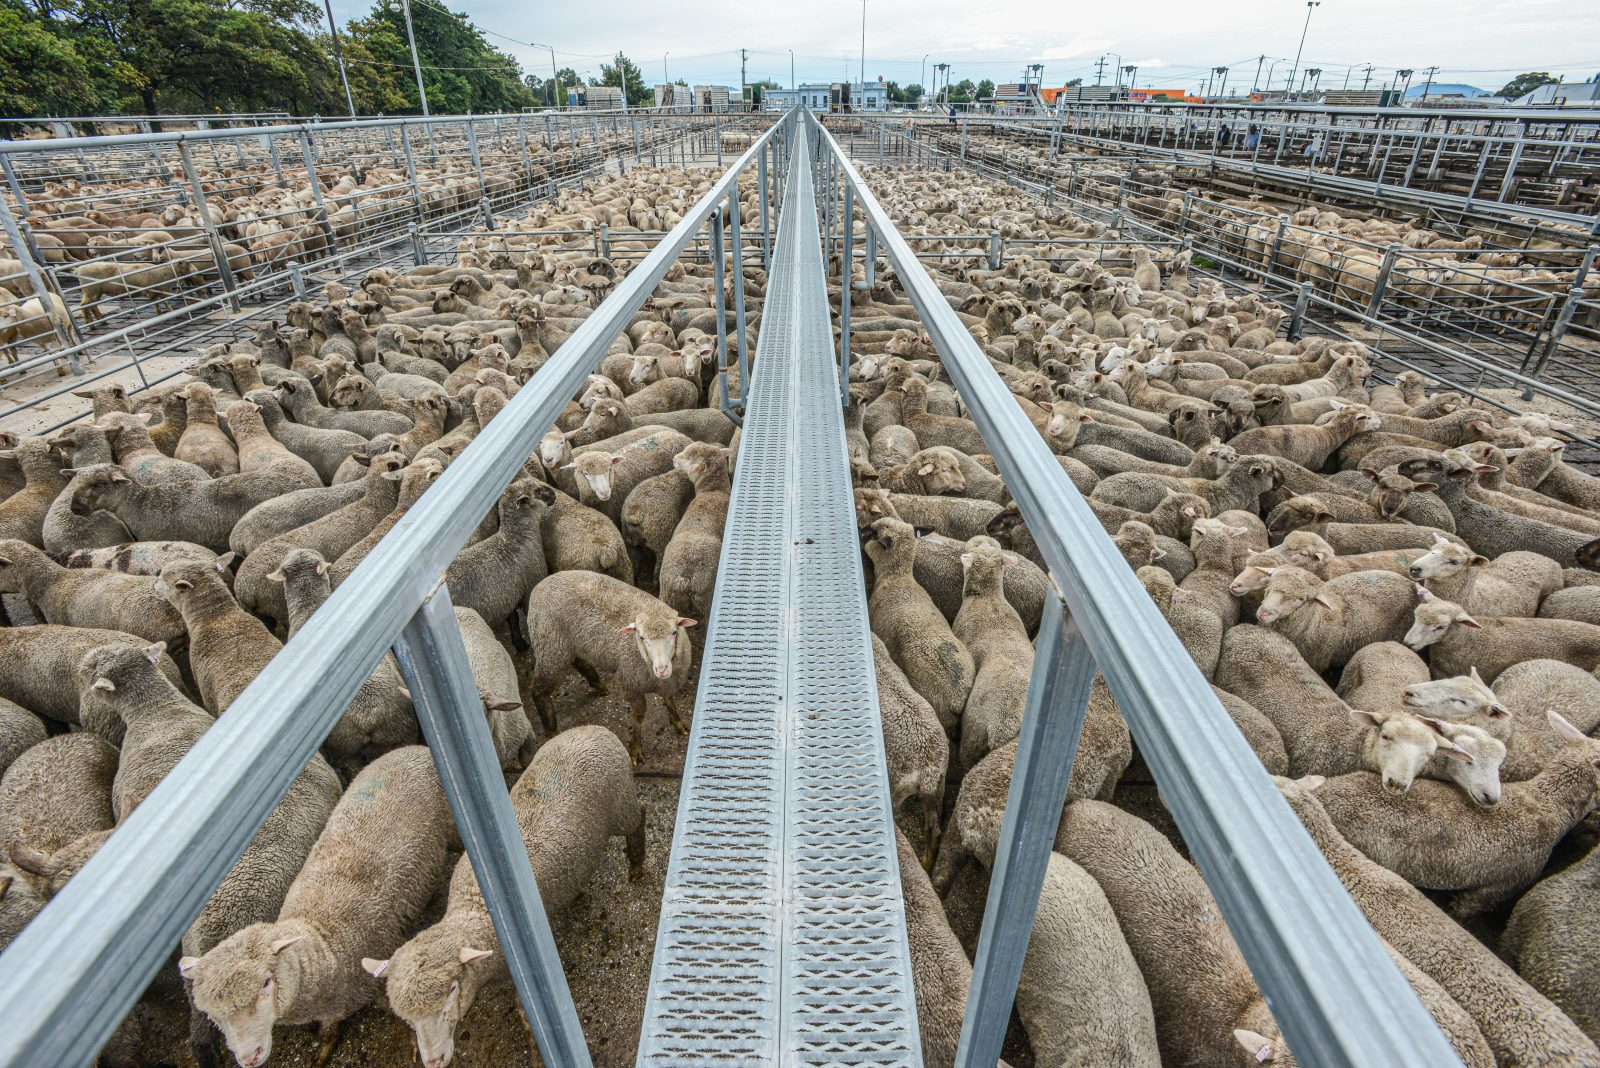 Tightly packed sheep at the sale yards. Australia, 2013